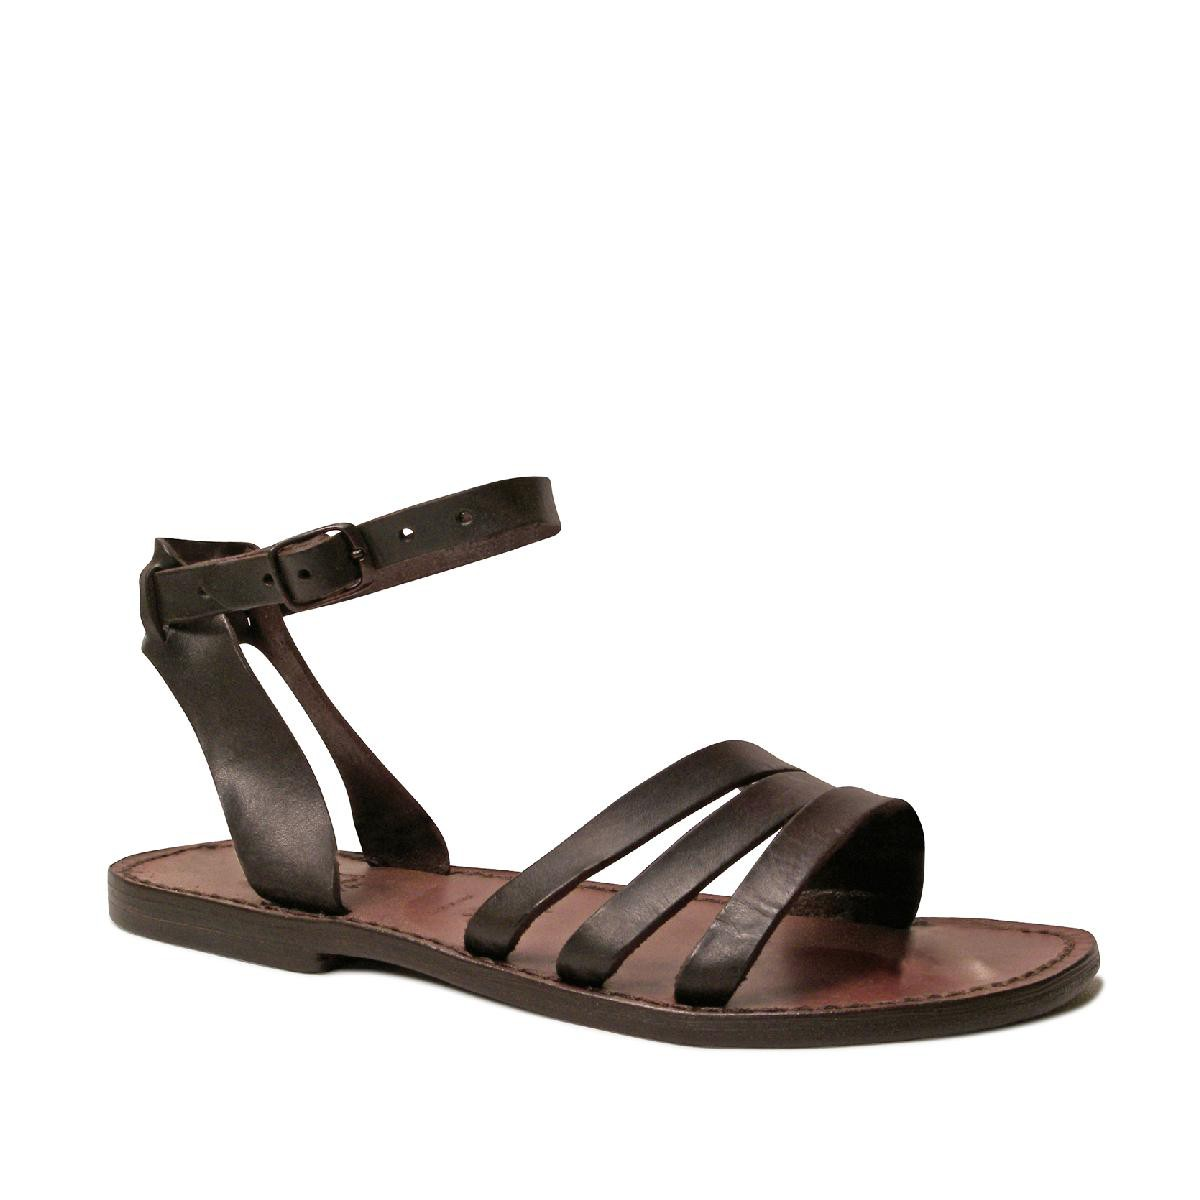 Lastest Naot Womens Karenna Sandals In Luggage Brown Leather  Haapygal